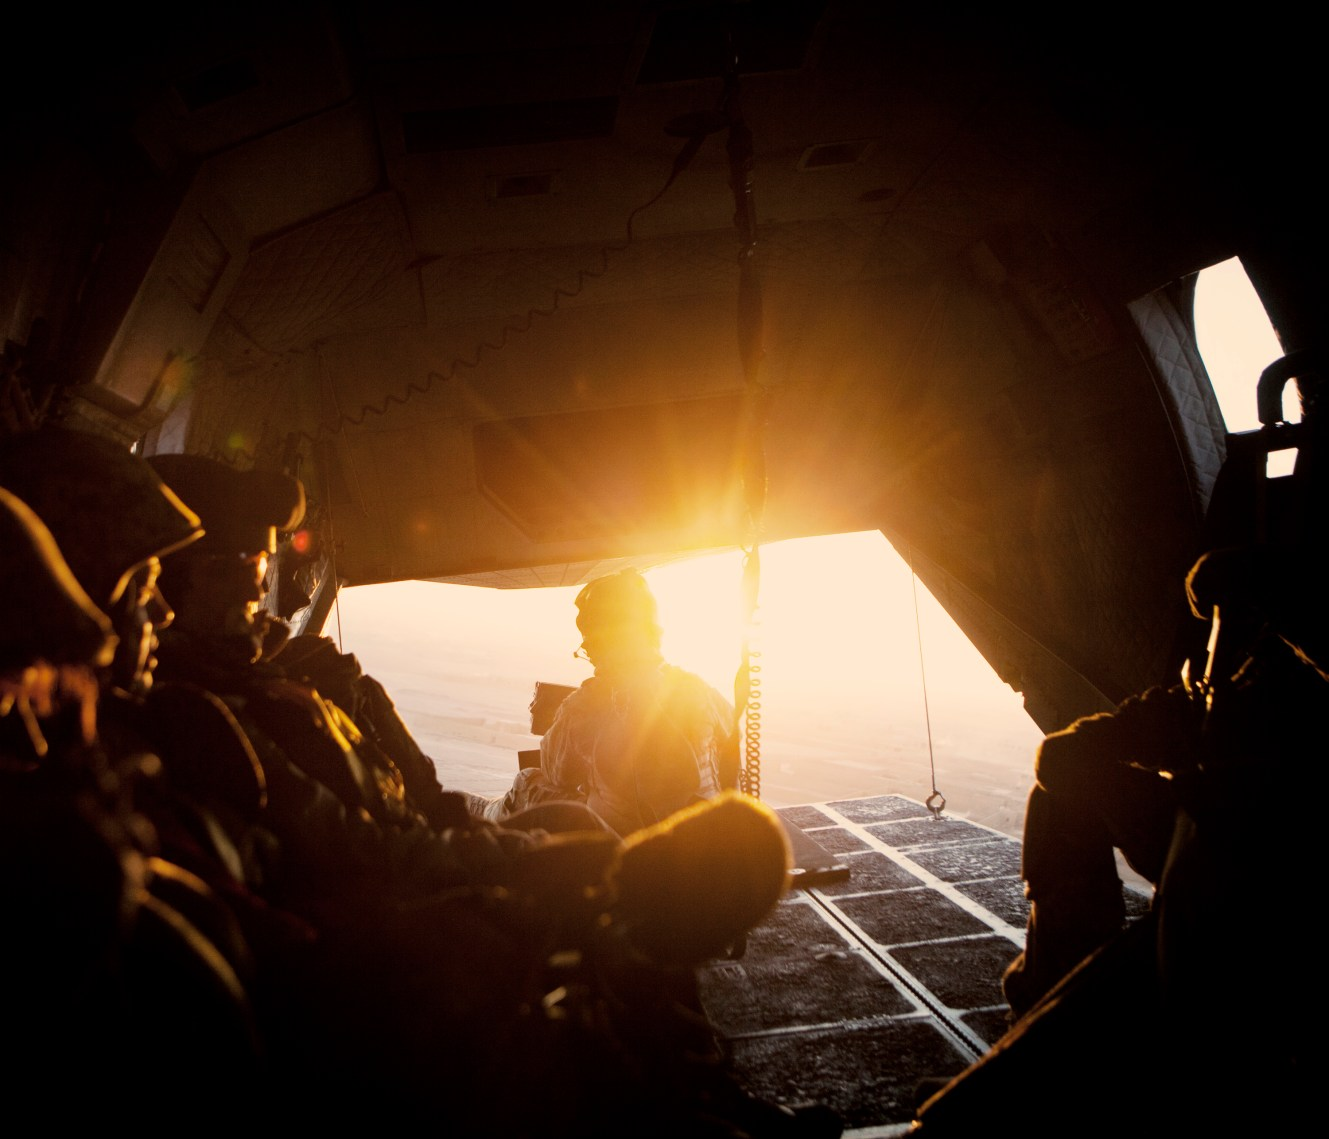 Soldiers sit in the cargo bay of a helicopter as it flies between Lashkar Gah and Camp Bastion. In June 2011, President Obama announced his plan to begin the withdrawal of US troops from Afghanistan, but there is currently no end date for the war in the troubled country. Helmand is the largest province in Afghanistan, and the heart of the war against terror. Commanders on the ground have described the situation as the most brutal conflict the British Army has been involved in since the Korean War. Much of the fighting between NATO and Taliban forces is taking place in this province and Helmand is a true Taliban stronghold. The Helmand River flows through the mainly desert region. With these images I am trying to show a softer side to this troubled area of Afghanistan.